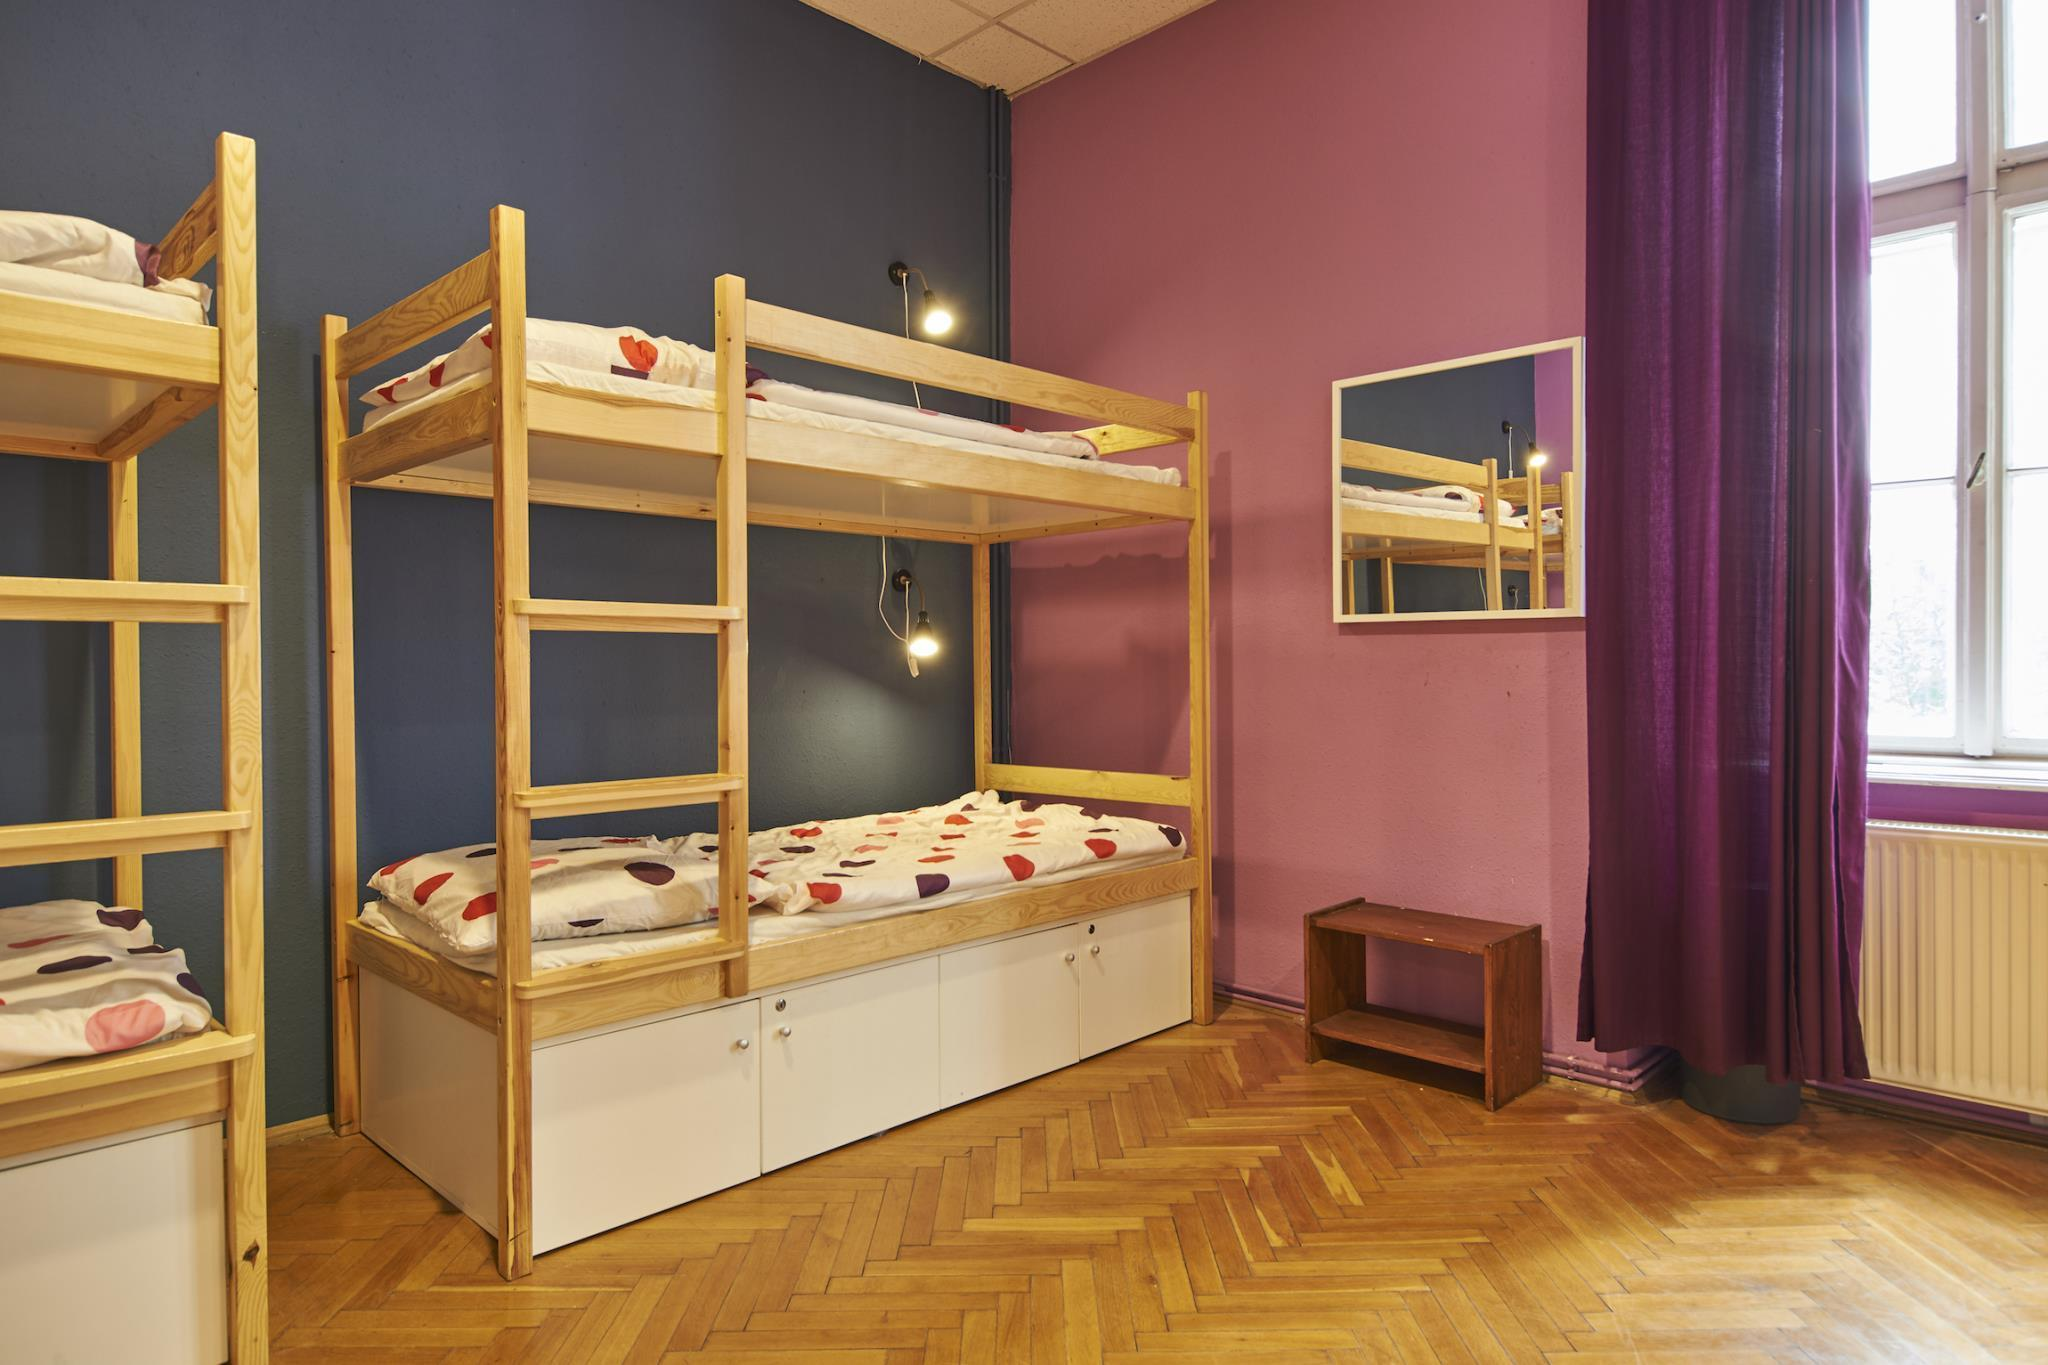 10-Bed Dormitory - Female Only